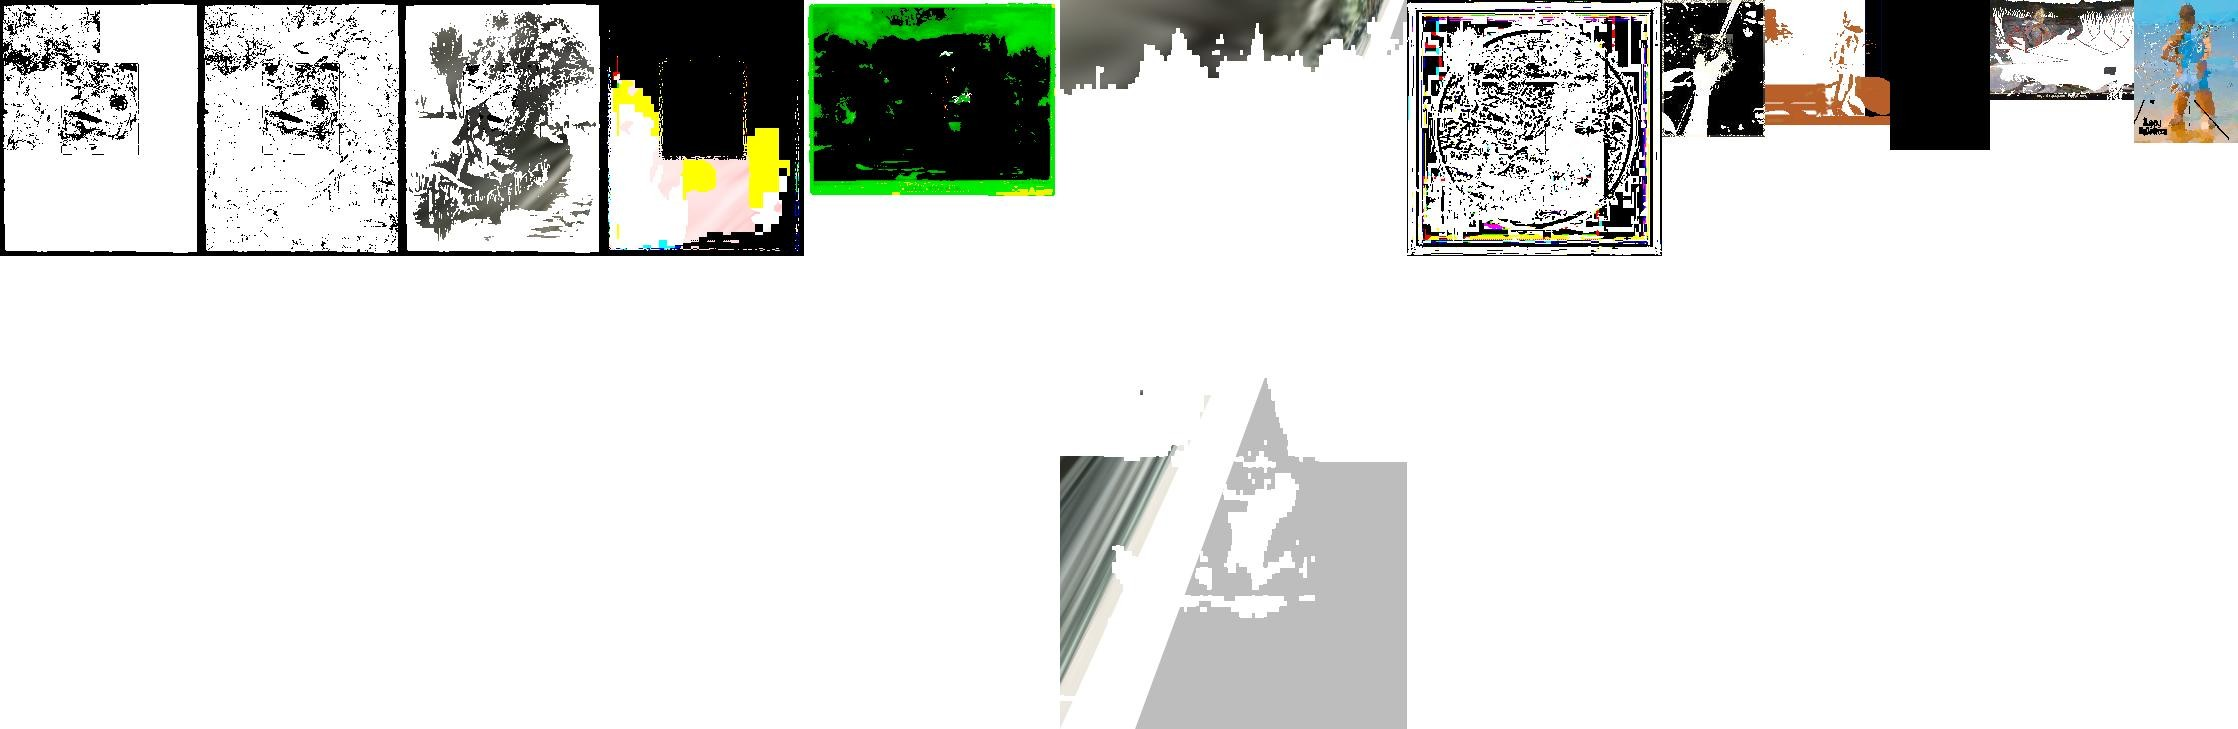 horror,_fishing_rod,_kneeling,_blur--80939-2731-23228-66552.jpg